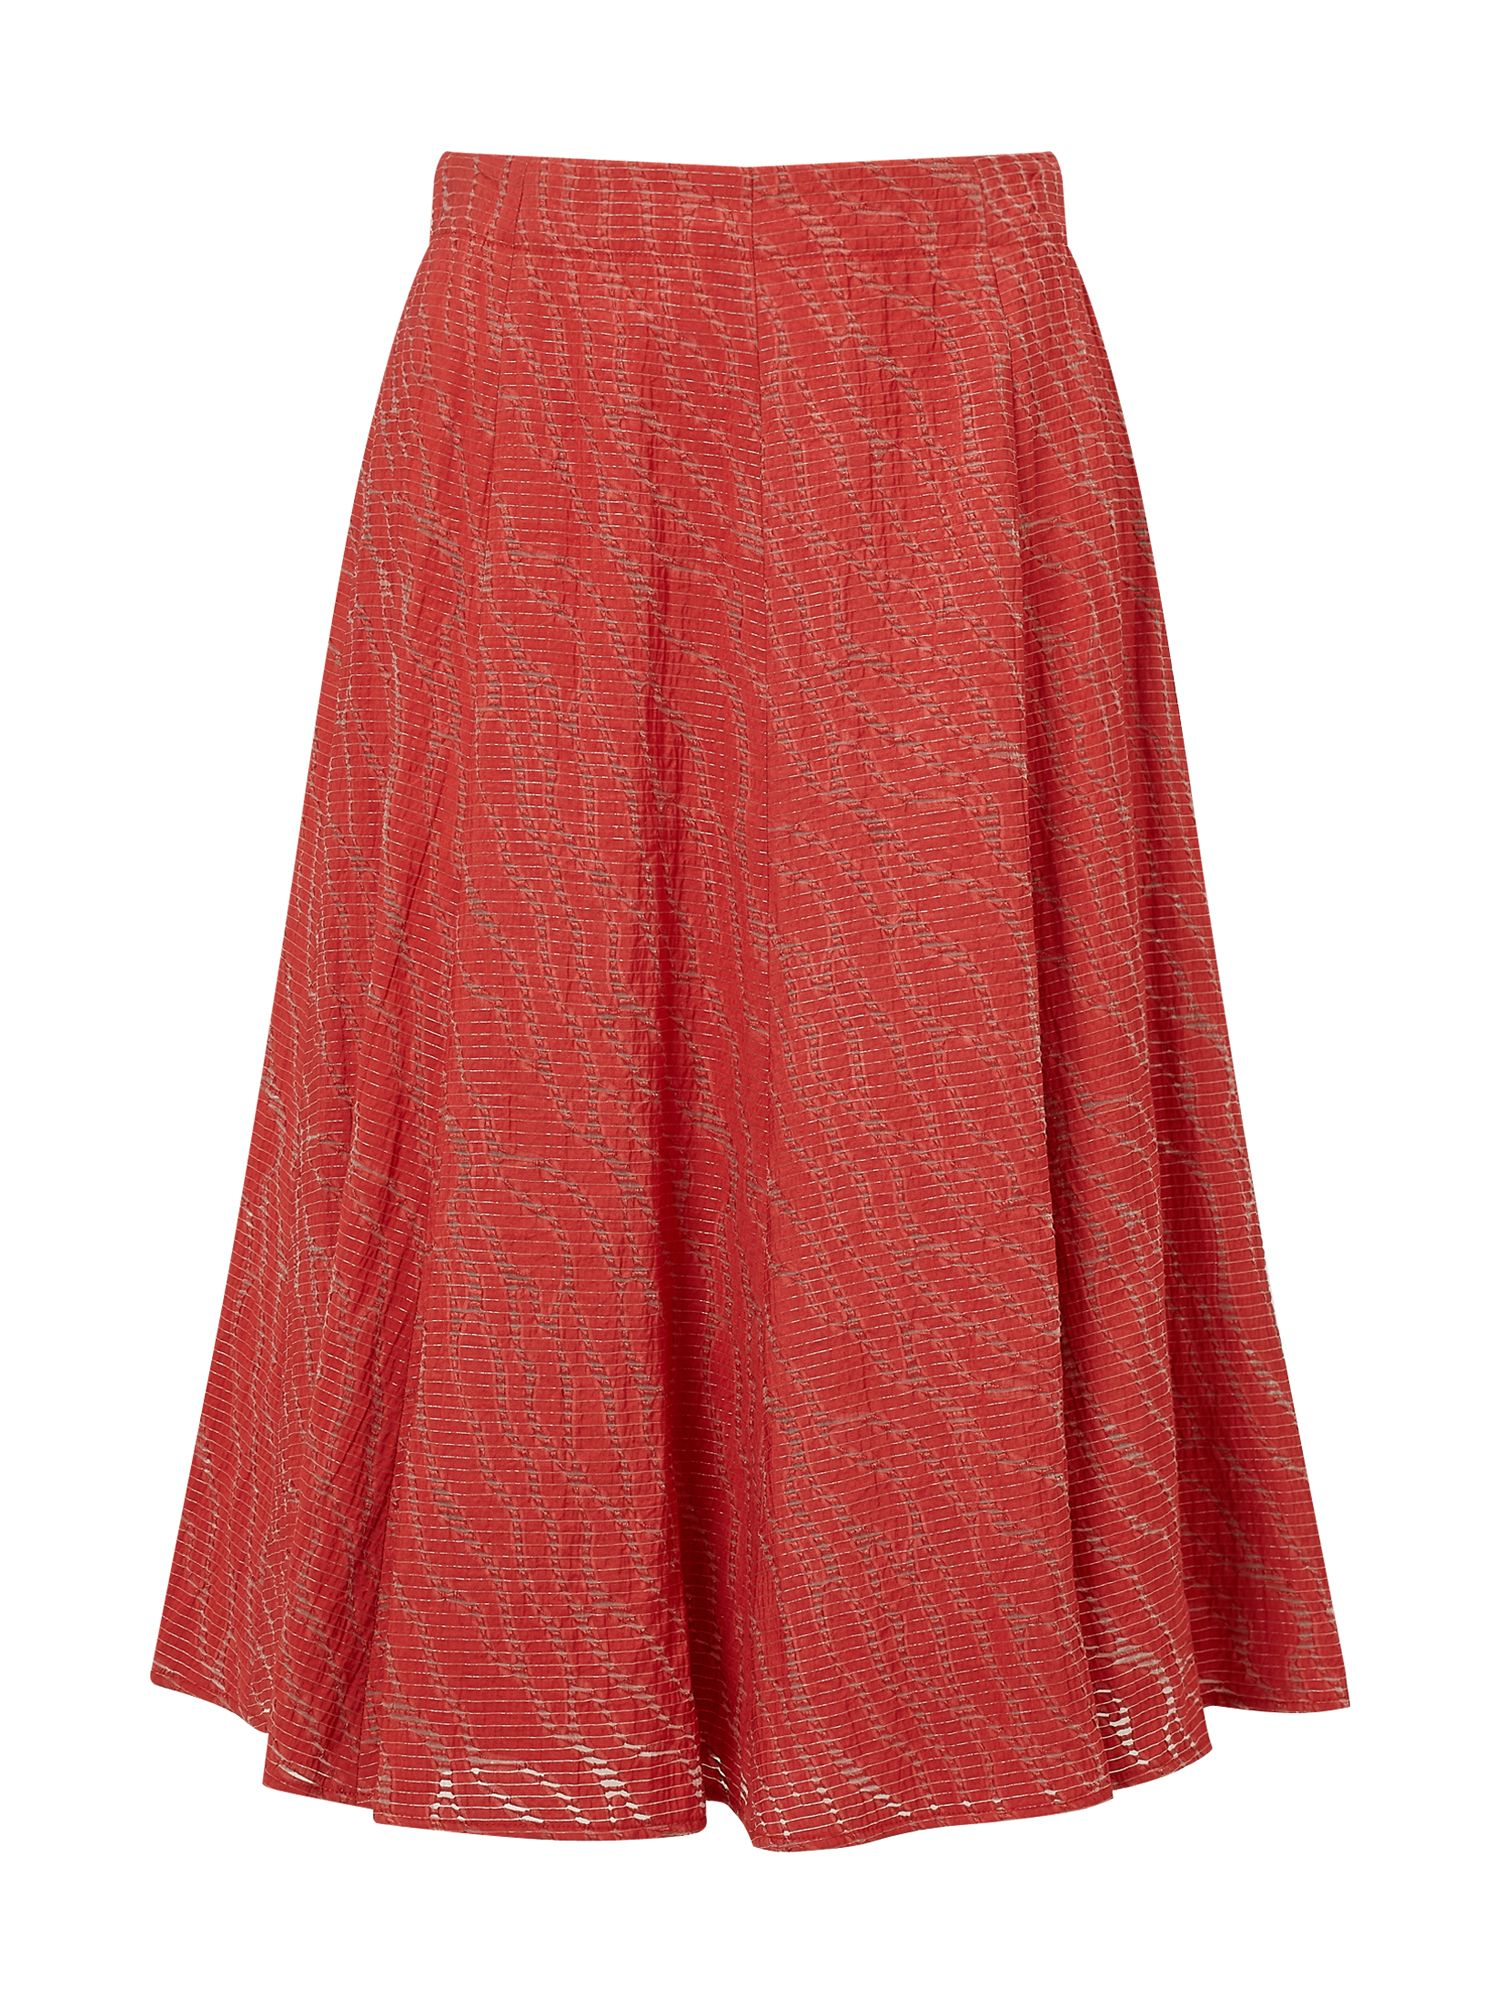 Eastex Burnout A-Line Skirt, Red